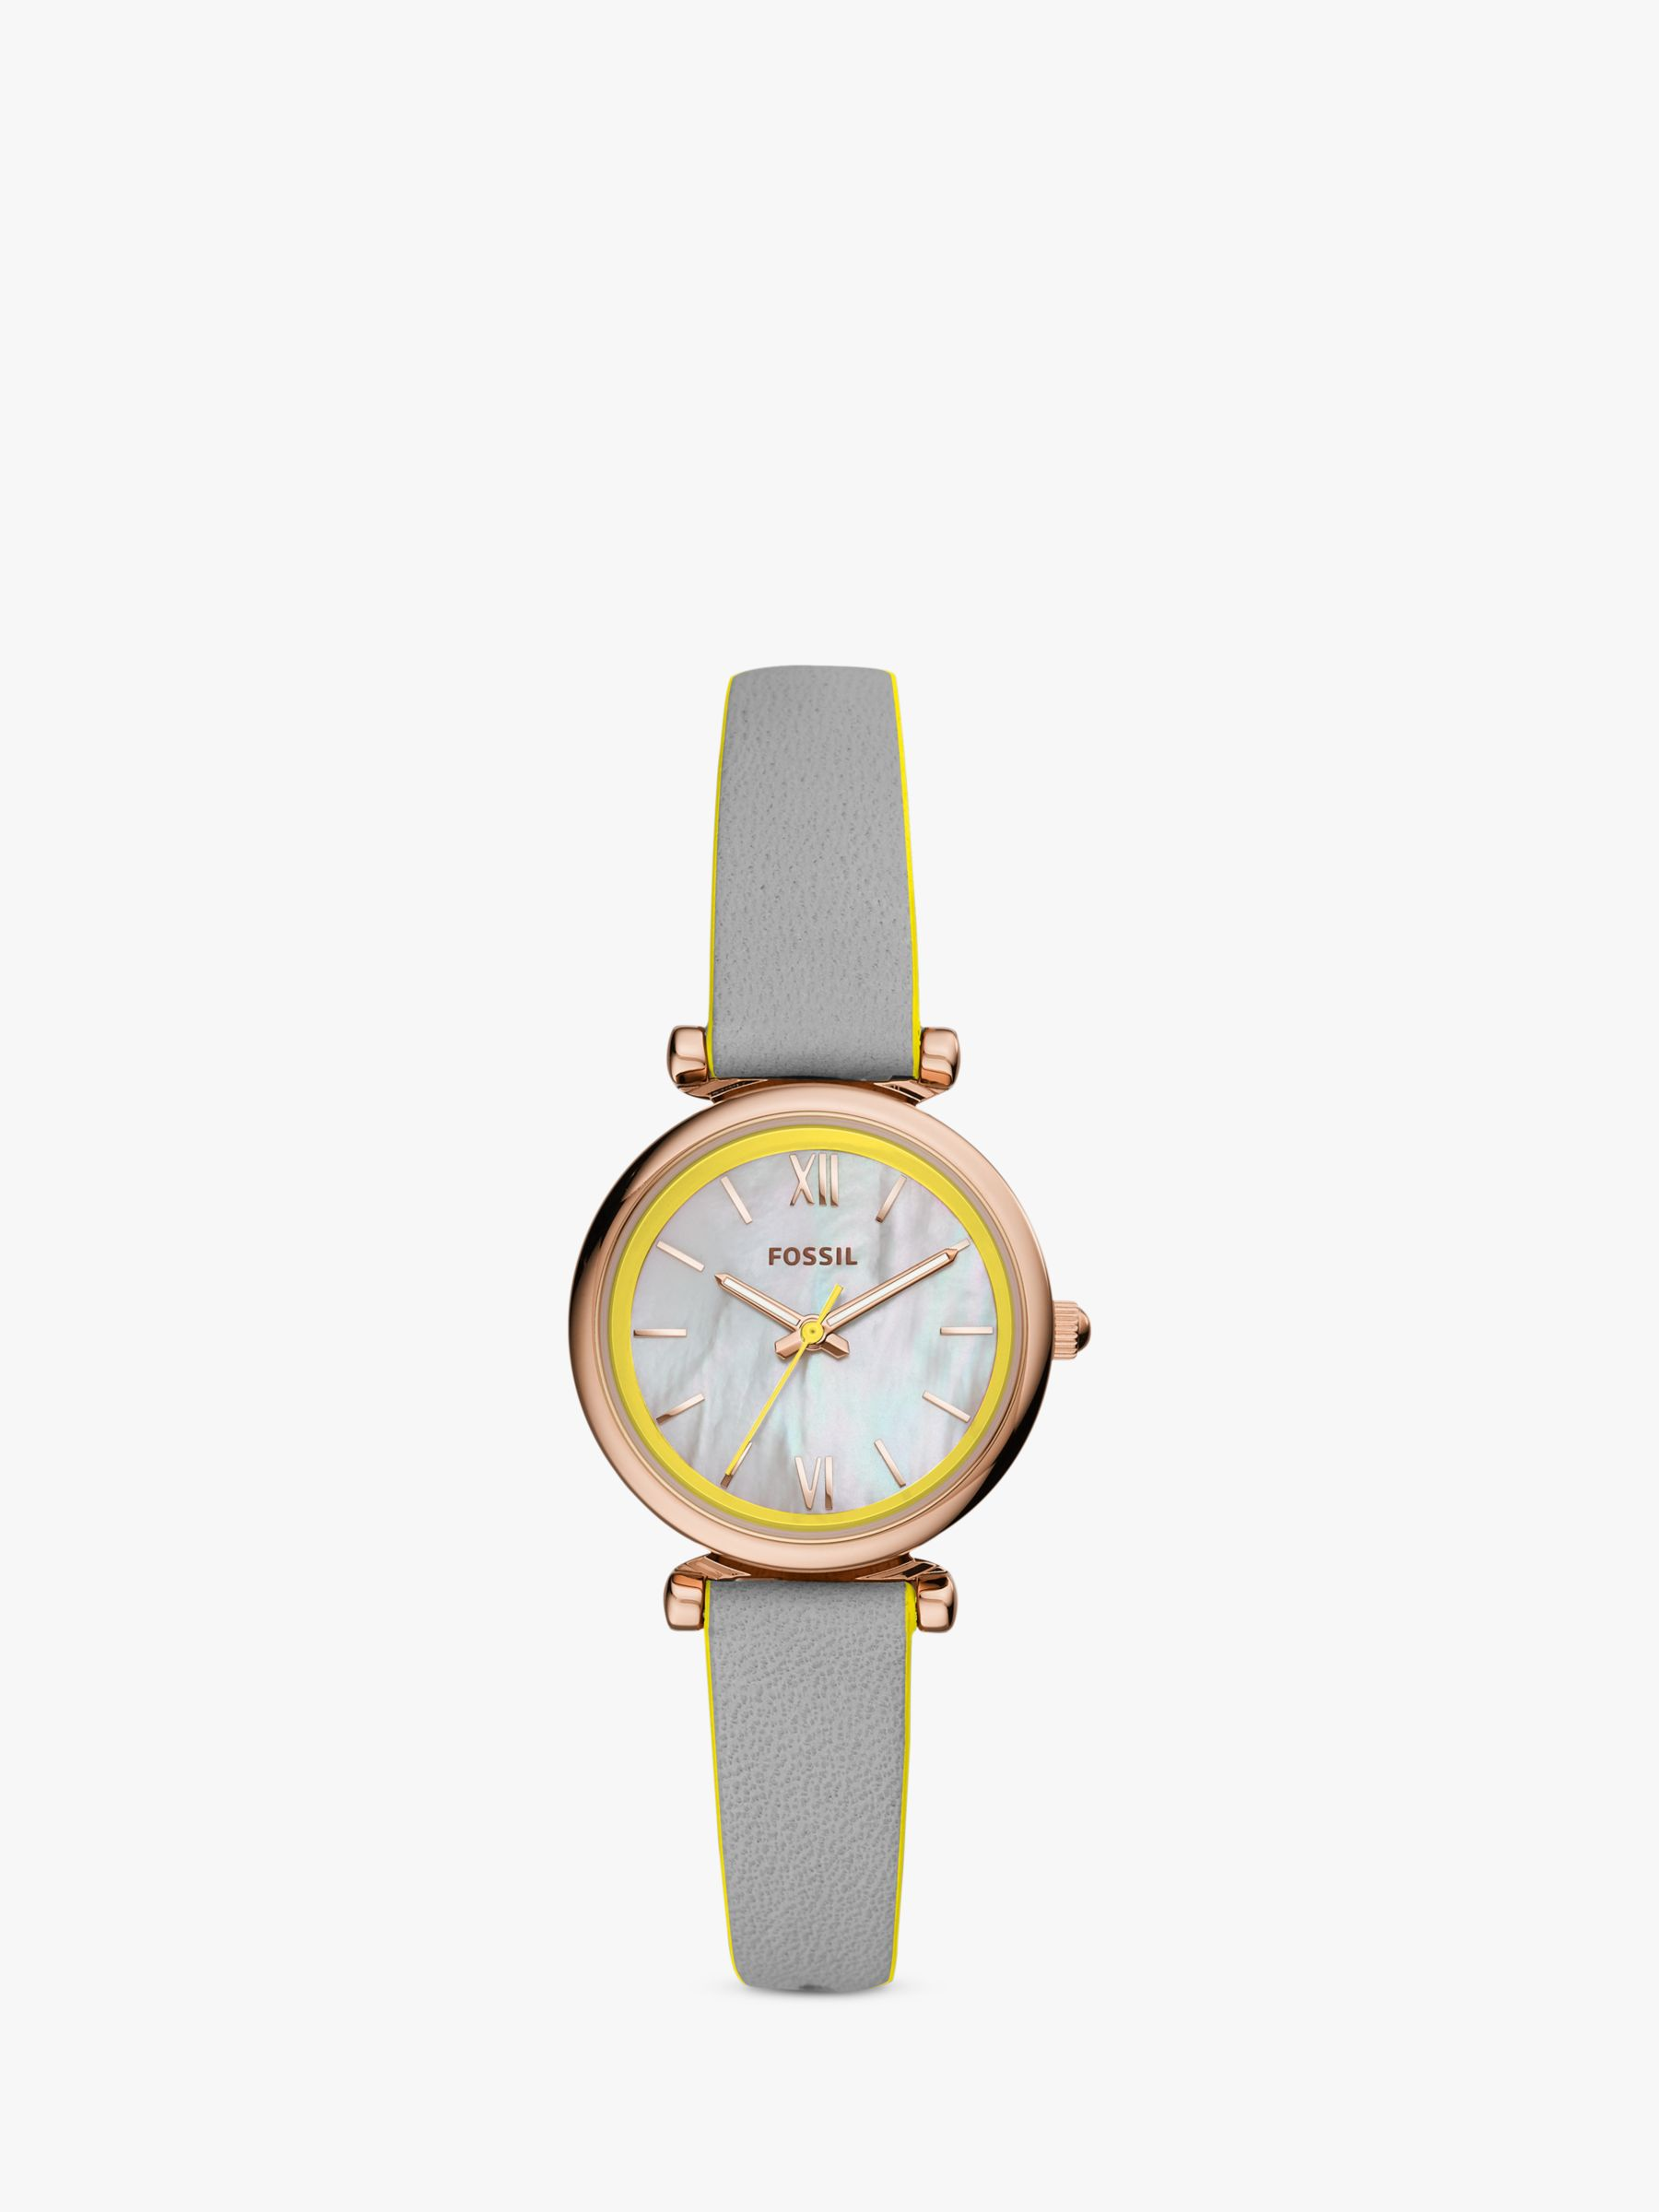 Fossil Fossil Women's Carlie Leather Strap Watch